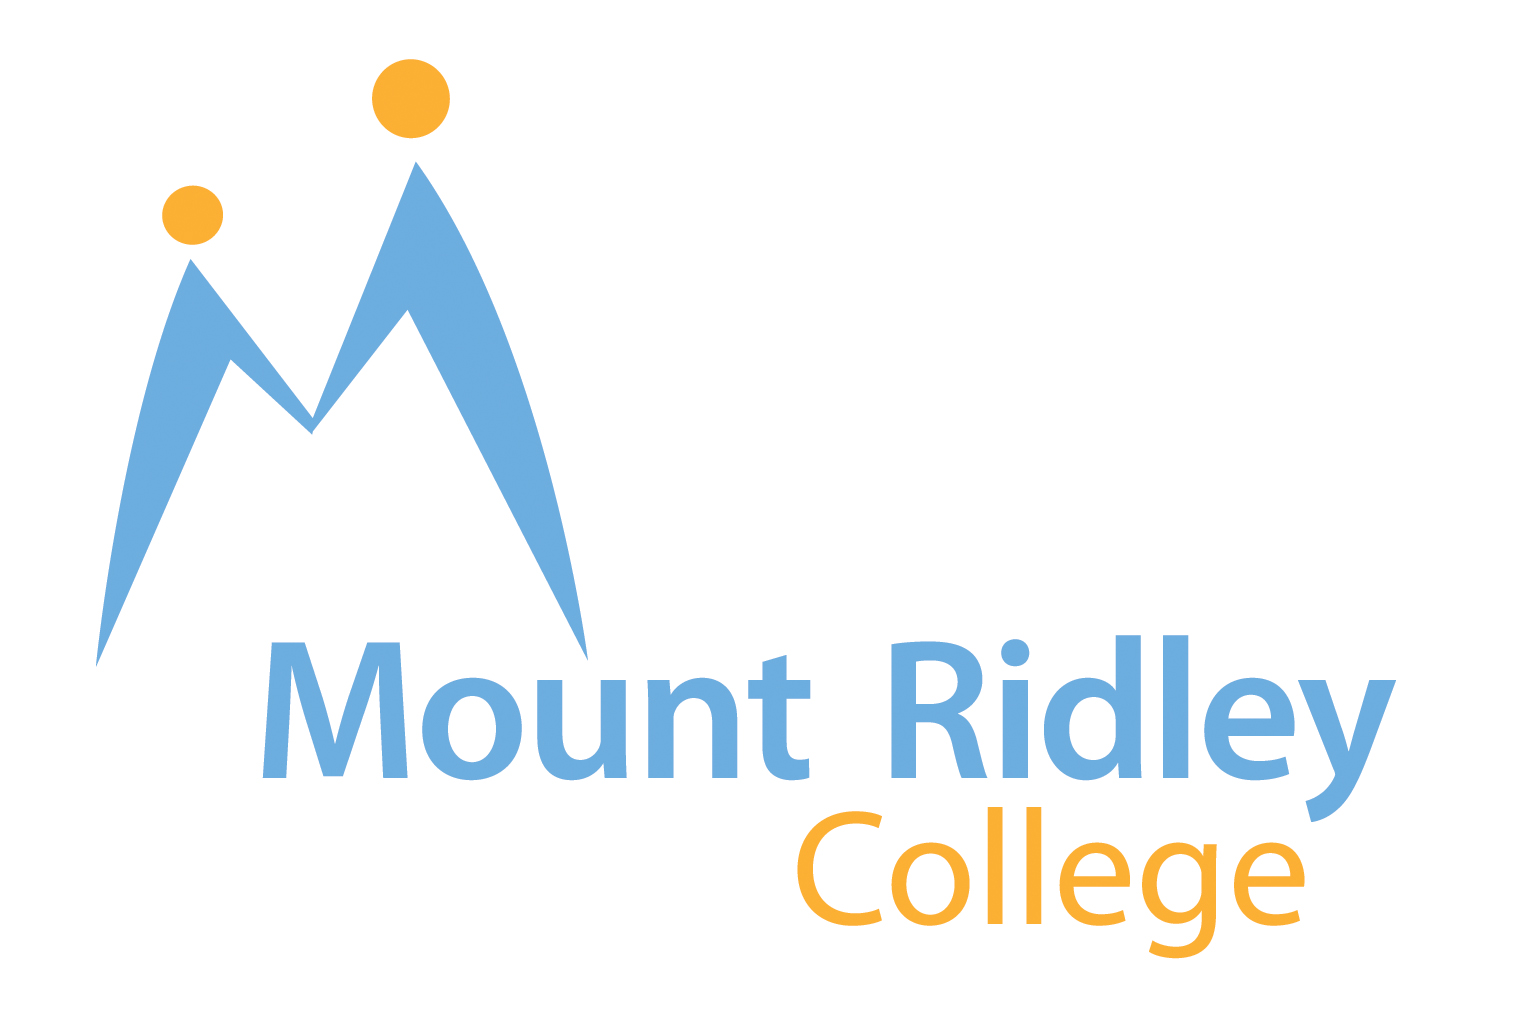 Mount Ridley College